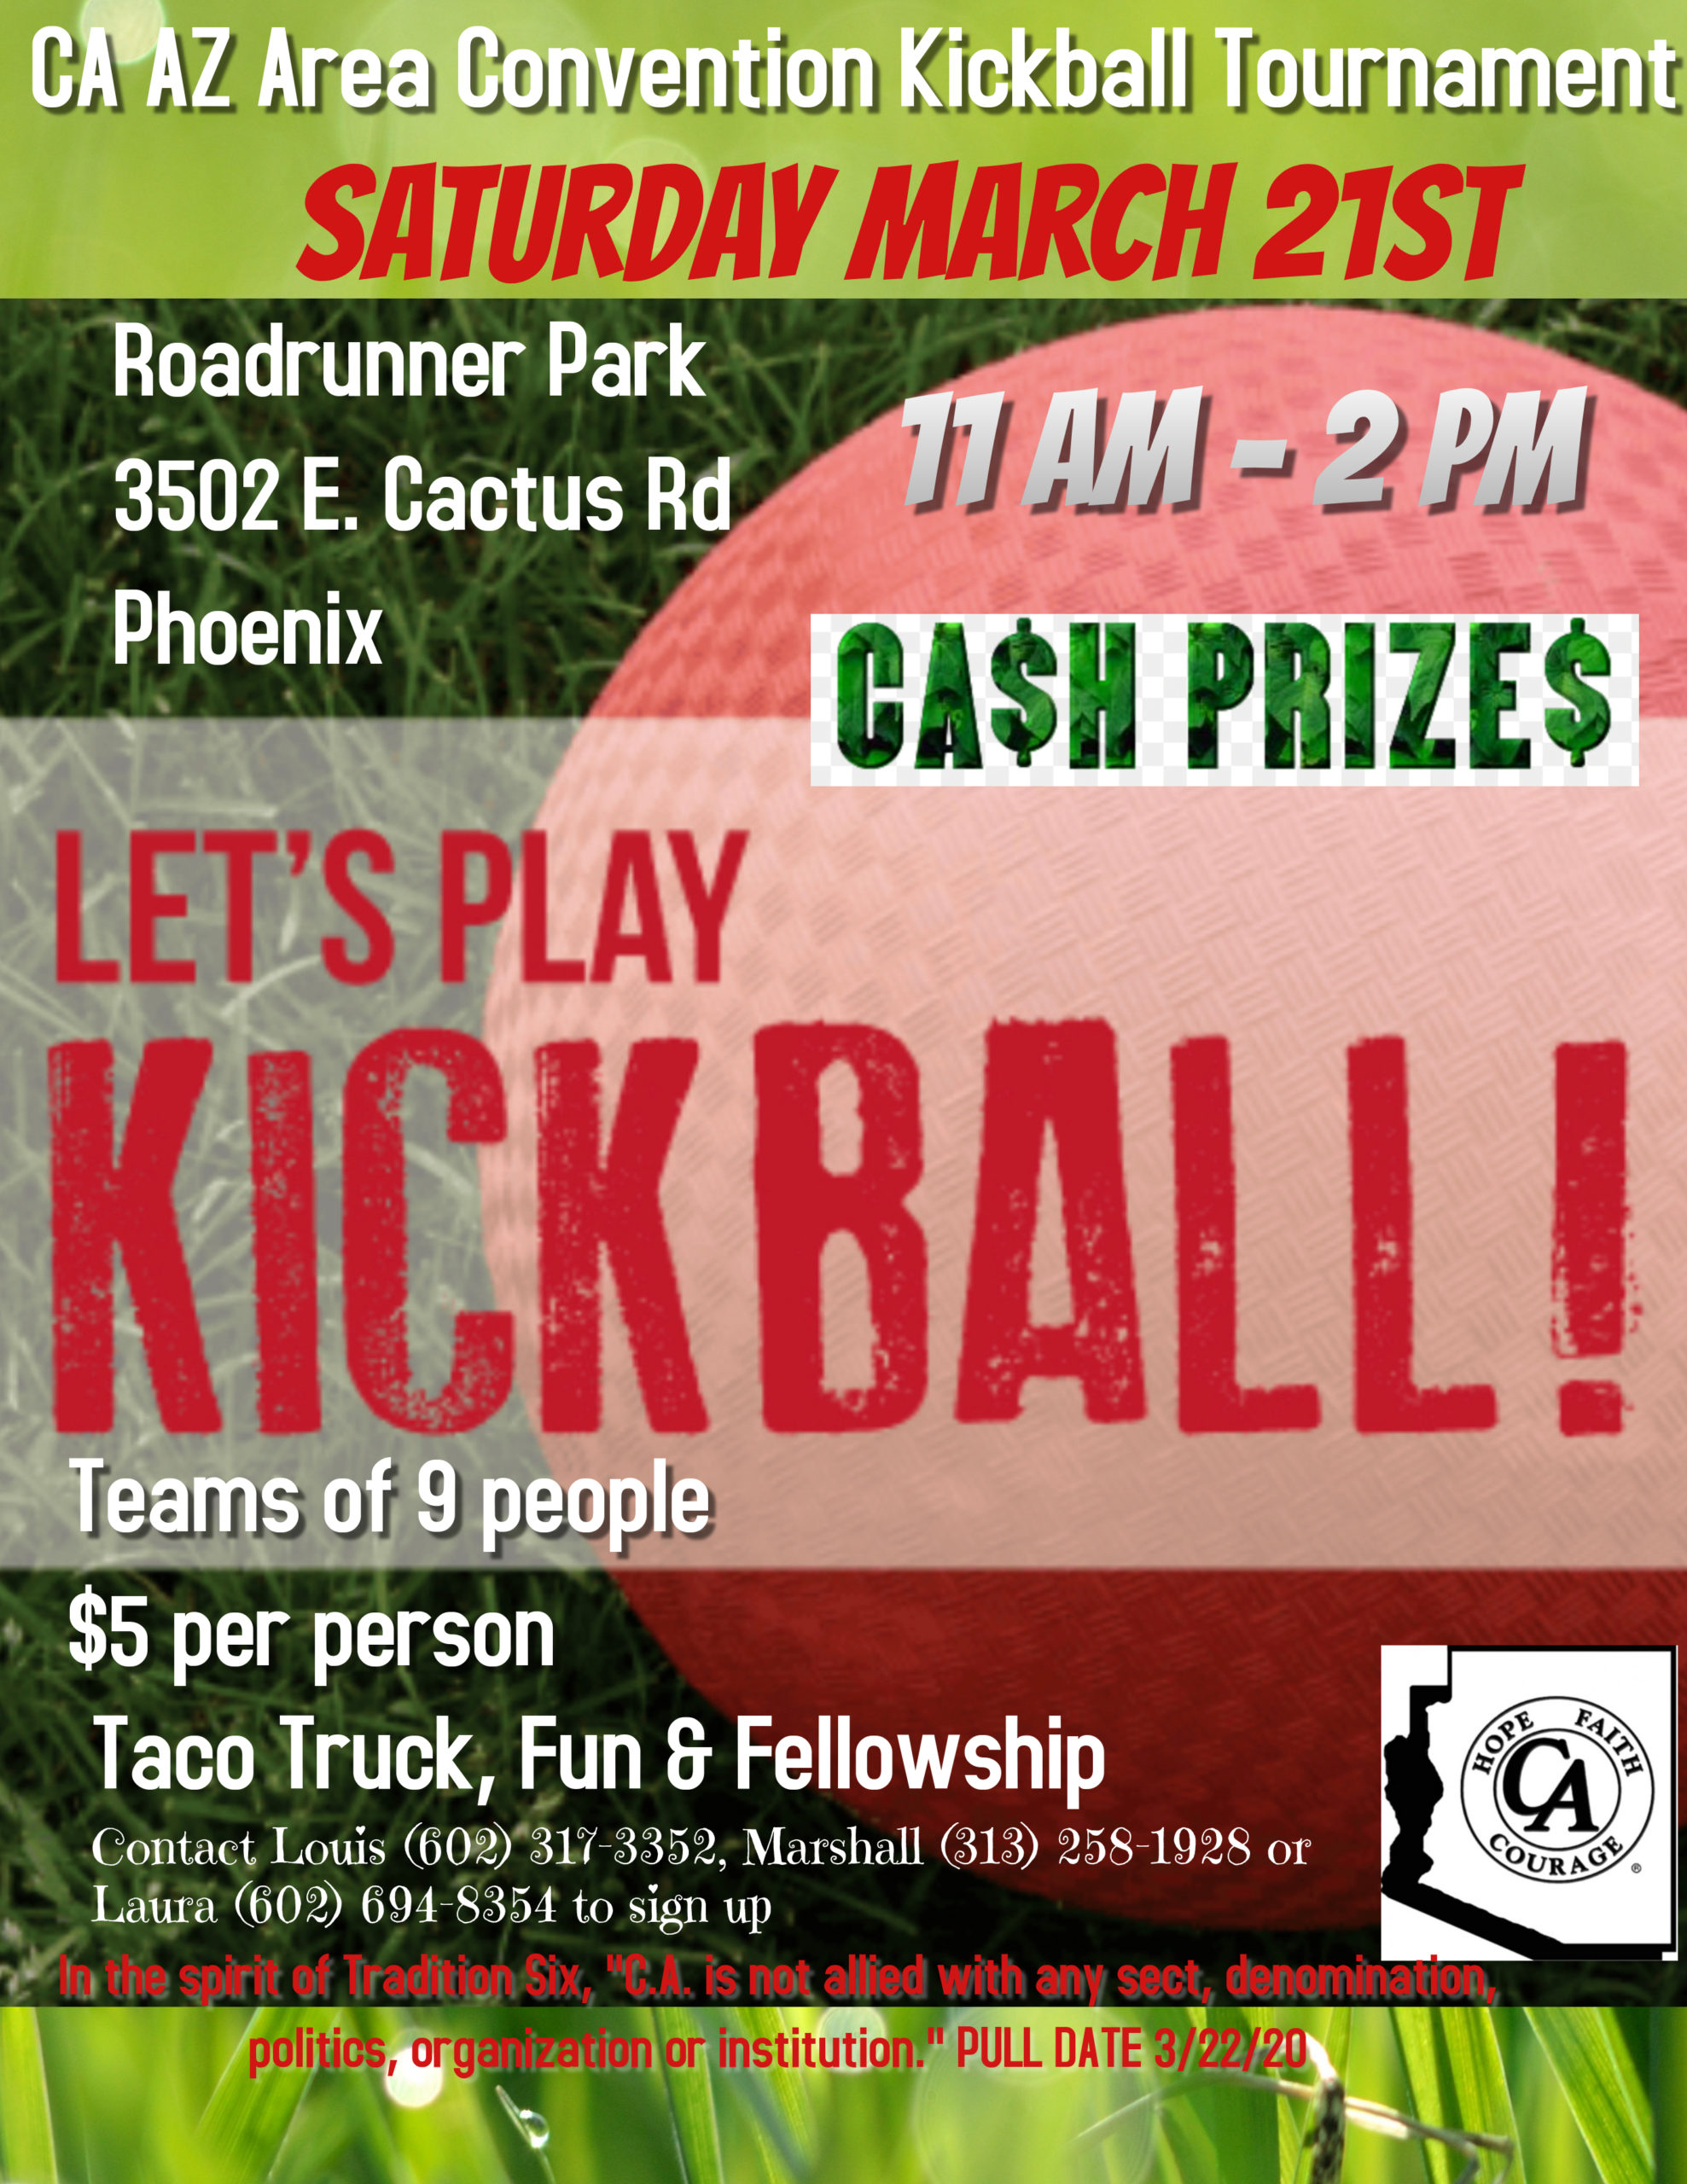 CA AZ Area Convention Kickball Tournament @ Roadrunner Park